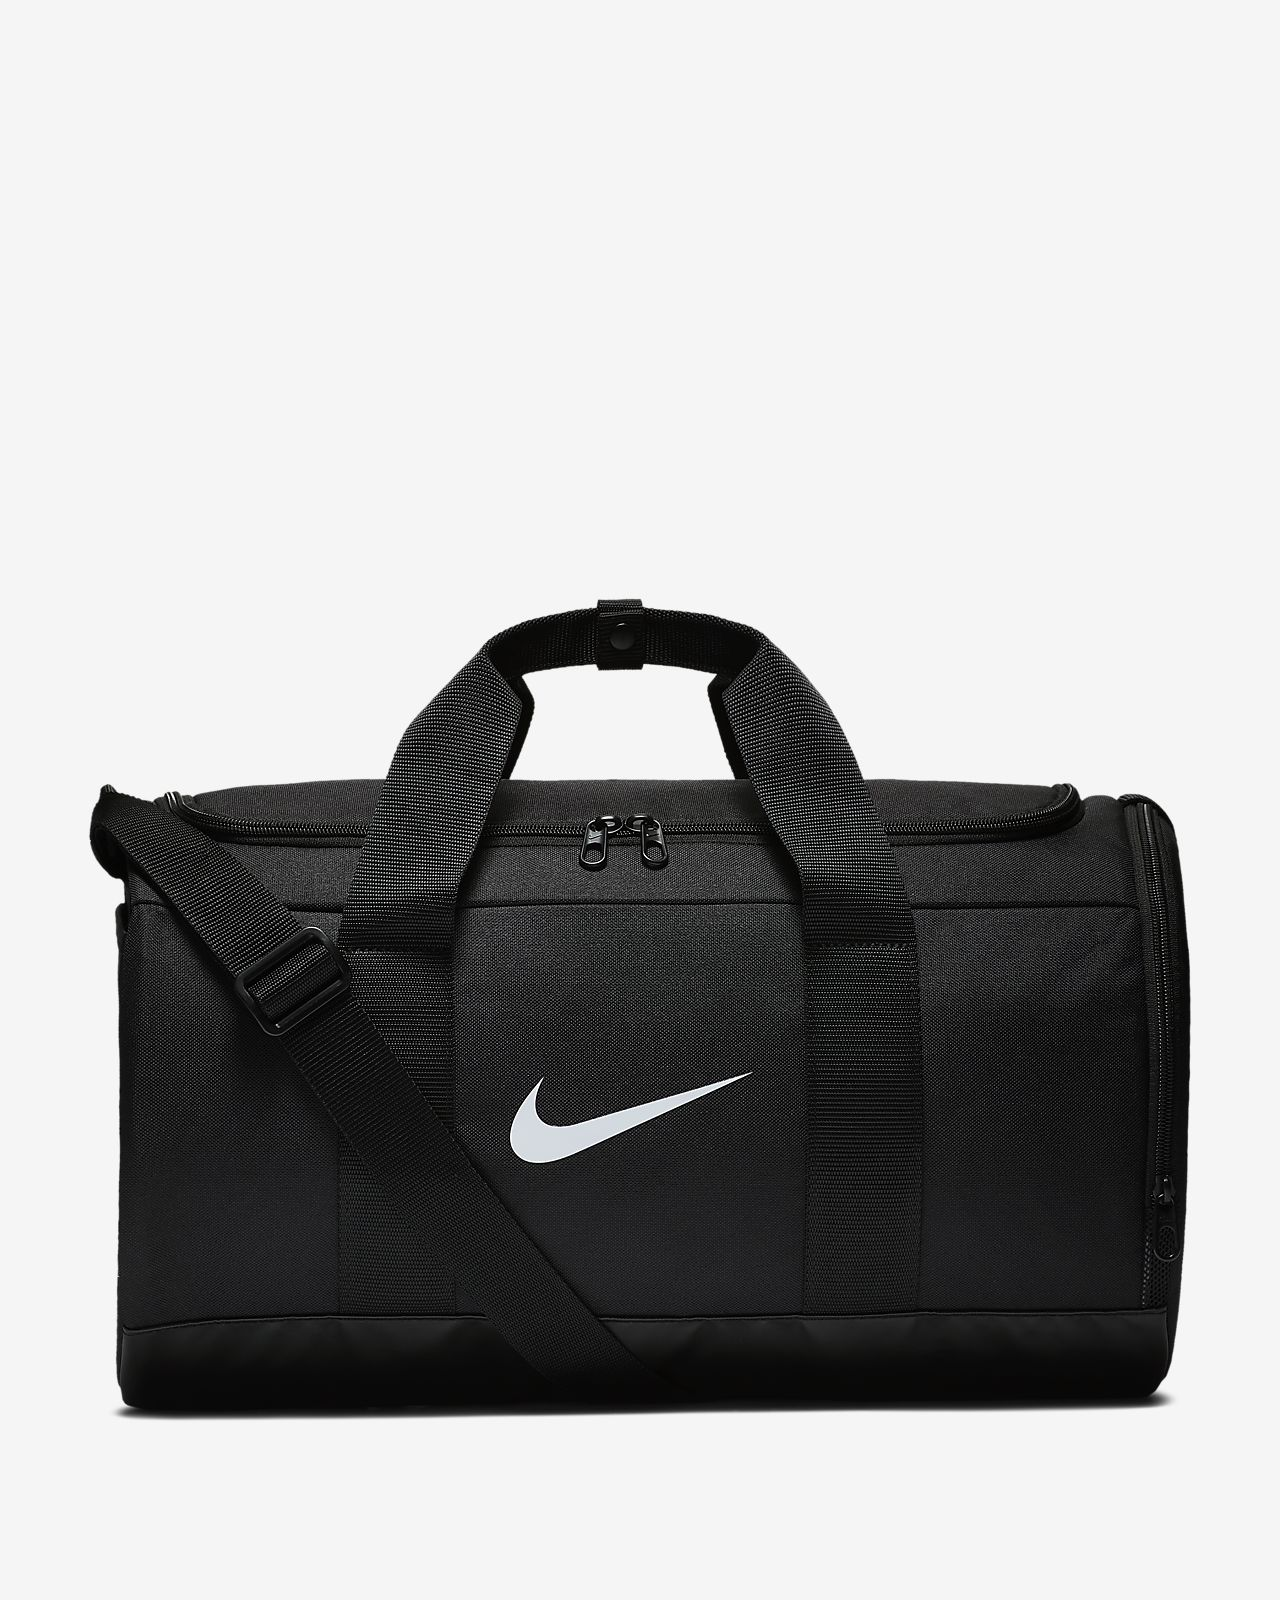 03e7070b1955 Nike Team Women s Training Duffel Bag. Nike.com DK